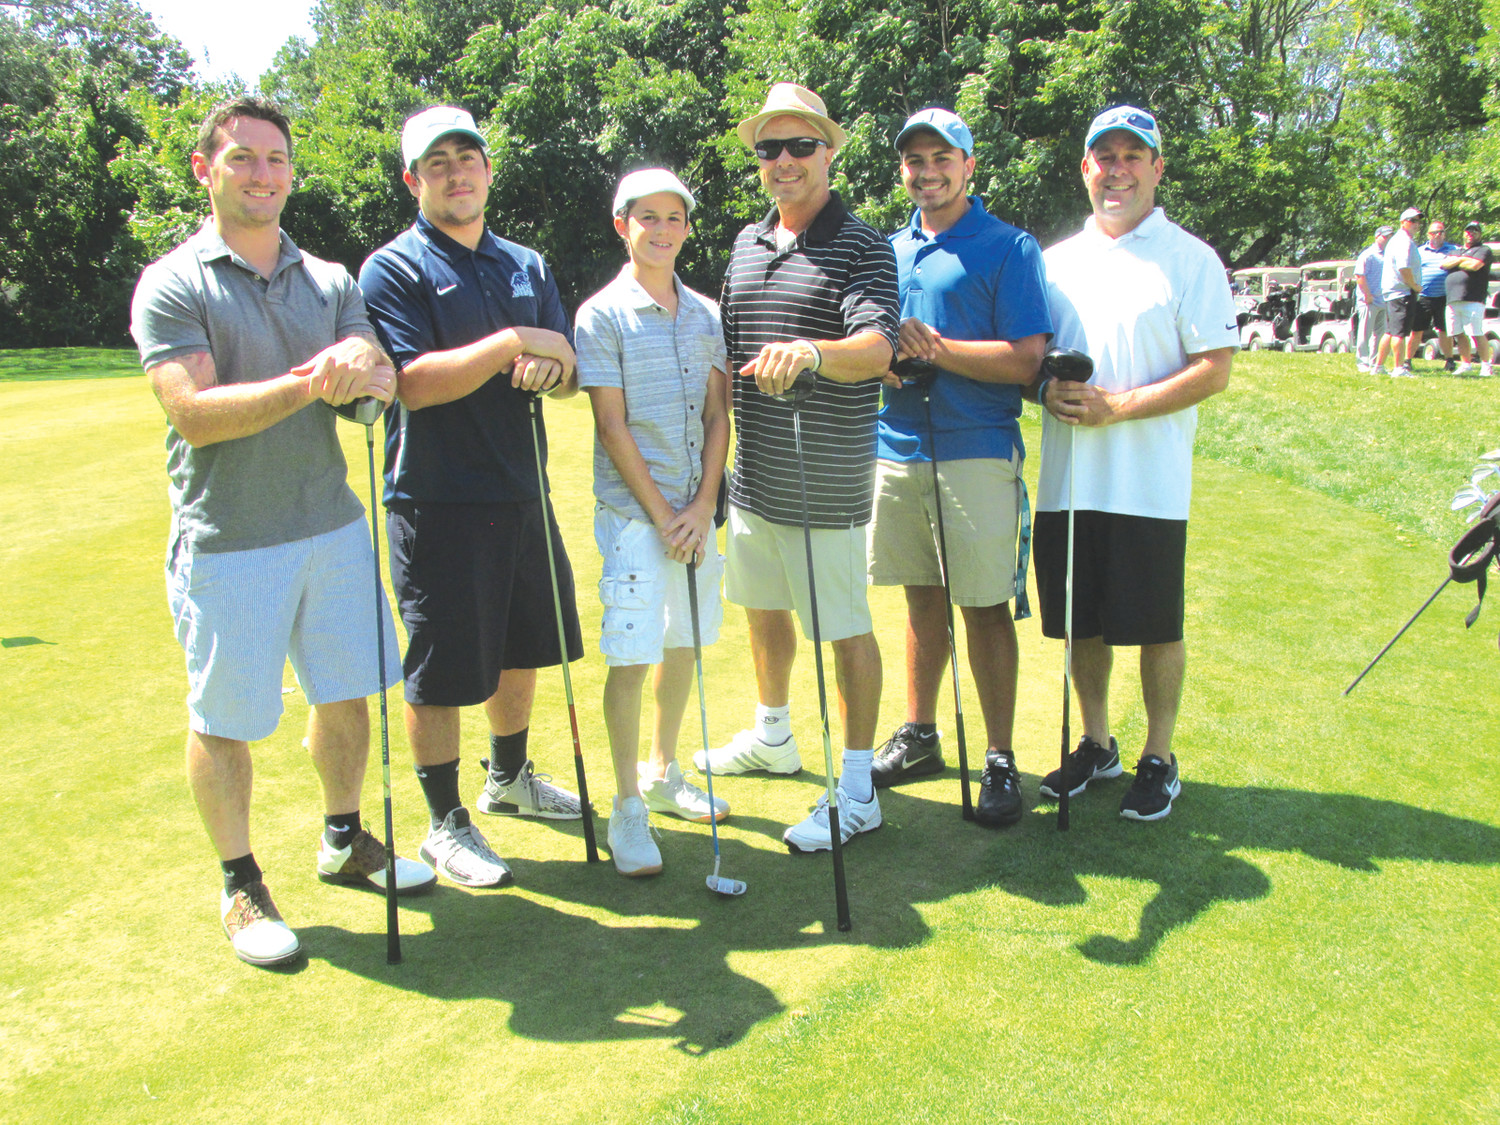 TOP TEAM: Team Pingitore, which included players Joe Pingitore and Dave Pingitore – as well as head coach Joe Acciardo and his son Joe Jr. – and Kyro Monteiro and Dave Pingitore took home top honors in the Panther Gridiron Club's Golf Tourney Sunday. (Sun Rise photo by Pete Fontaine)